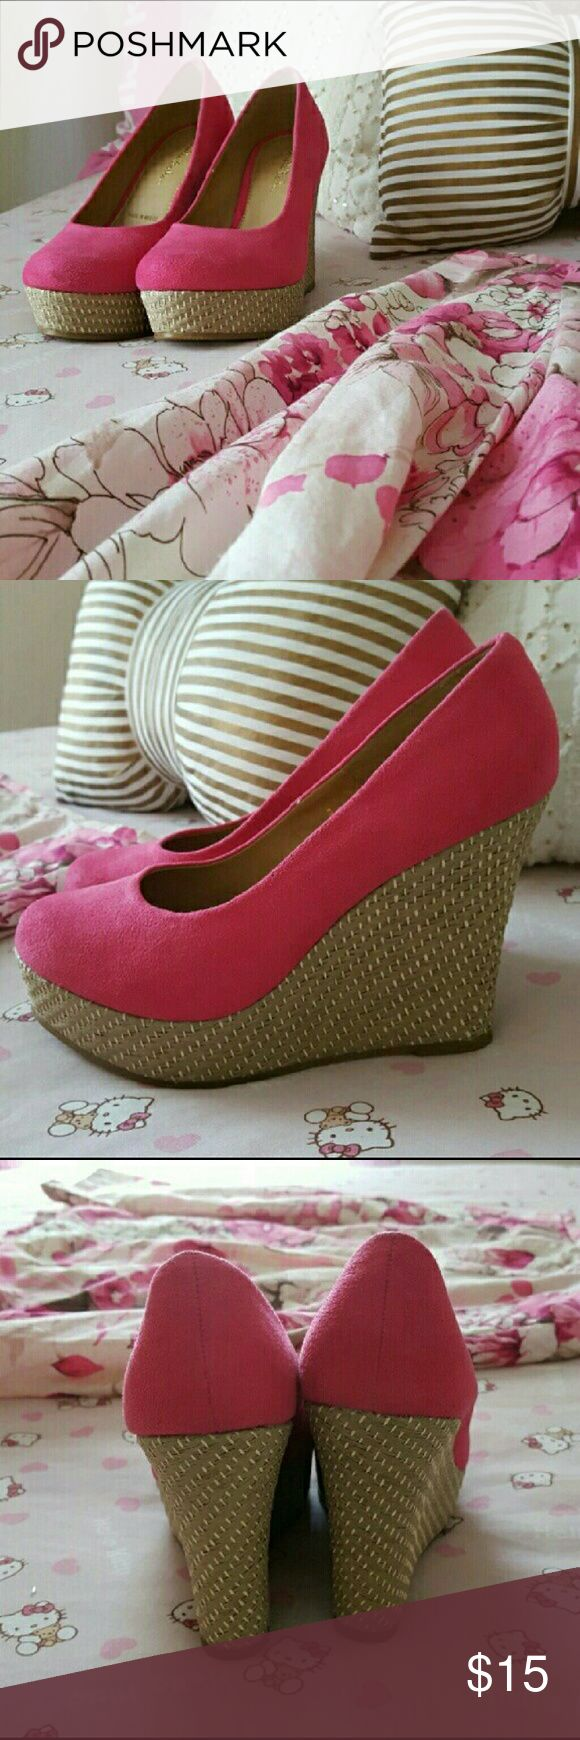 NWOT SZ 7.5  Pink Suede Wedges Gabriella Rocha Brand new Size 7.5 Pink Suede Wedges.  In perfect condition by Gabriella Rocha. They are marked size 8 but fit like a 7.5. Gabriella Rocha  Shoes Wedges